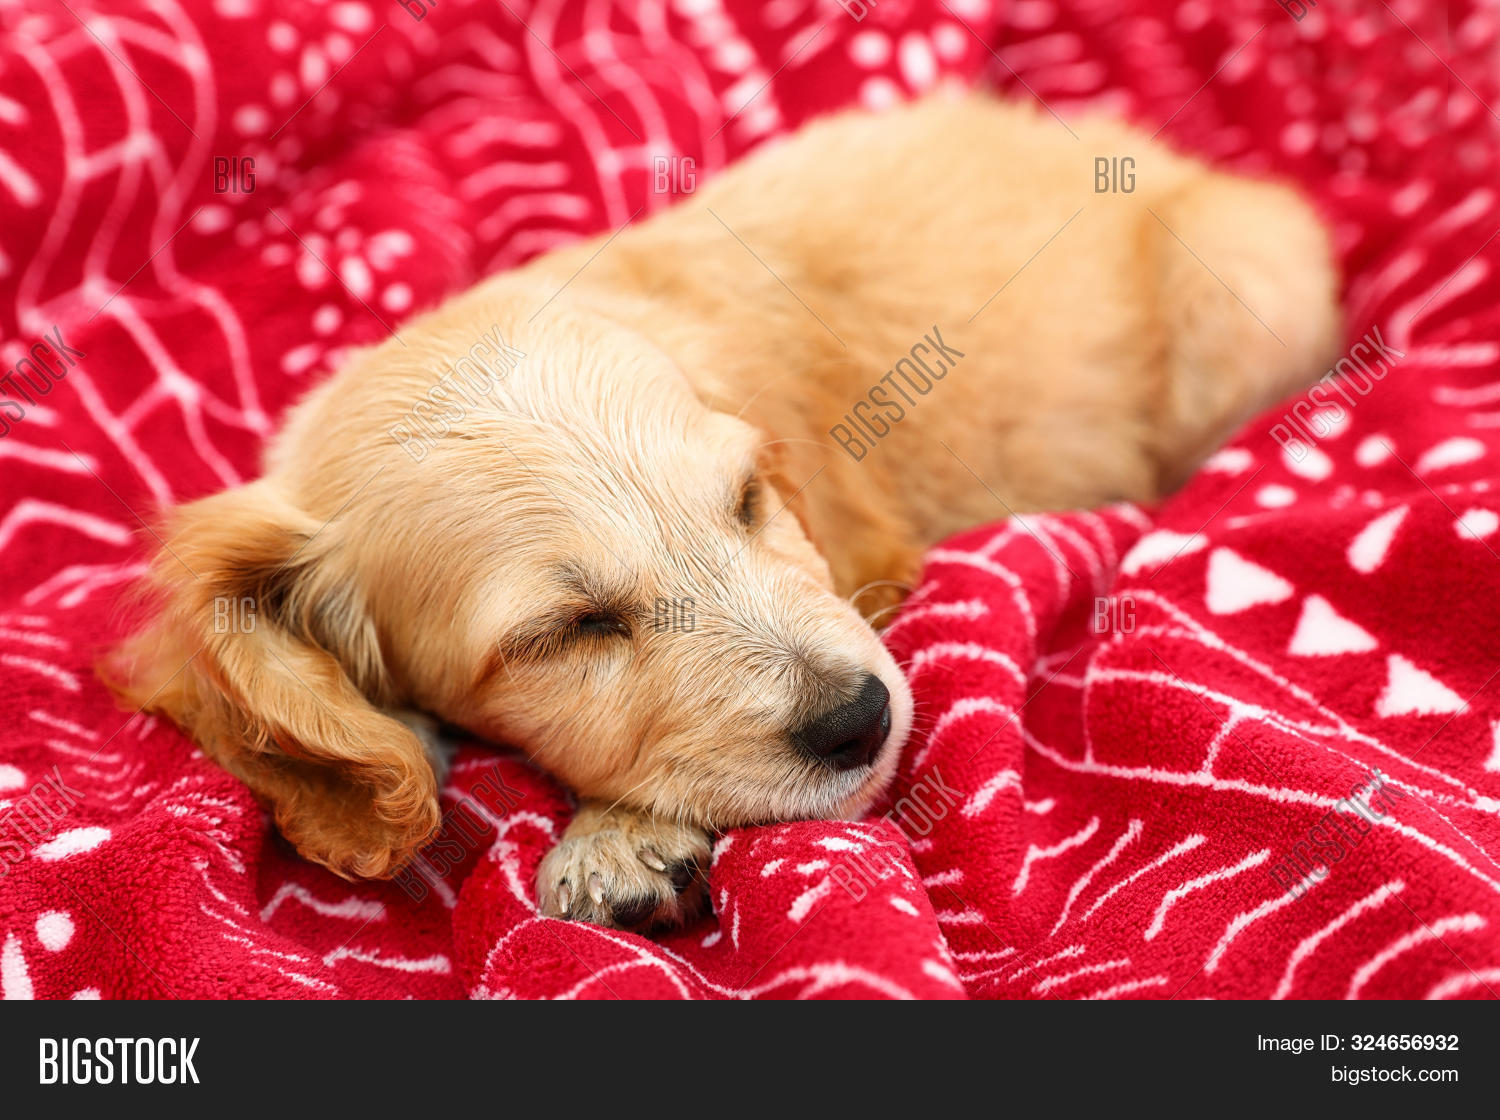 Adorable English Image Photo Free Trial Bigstock